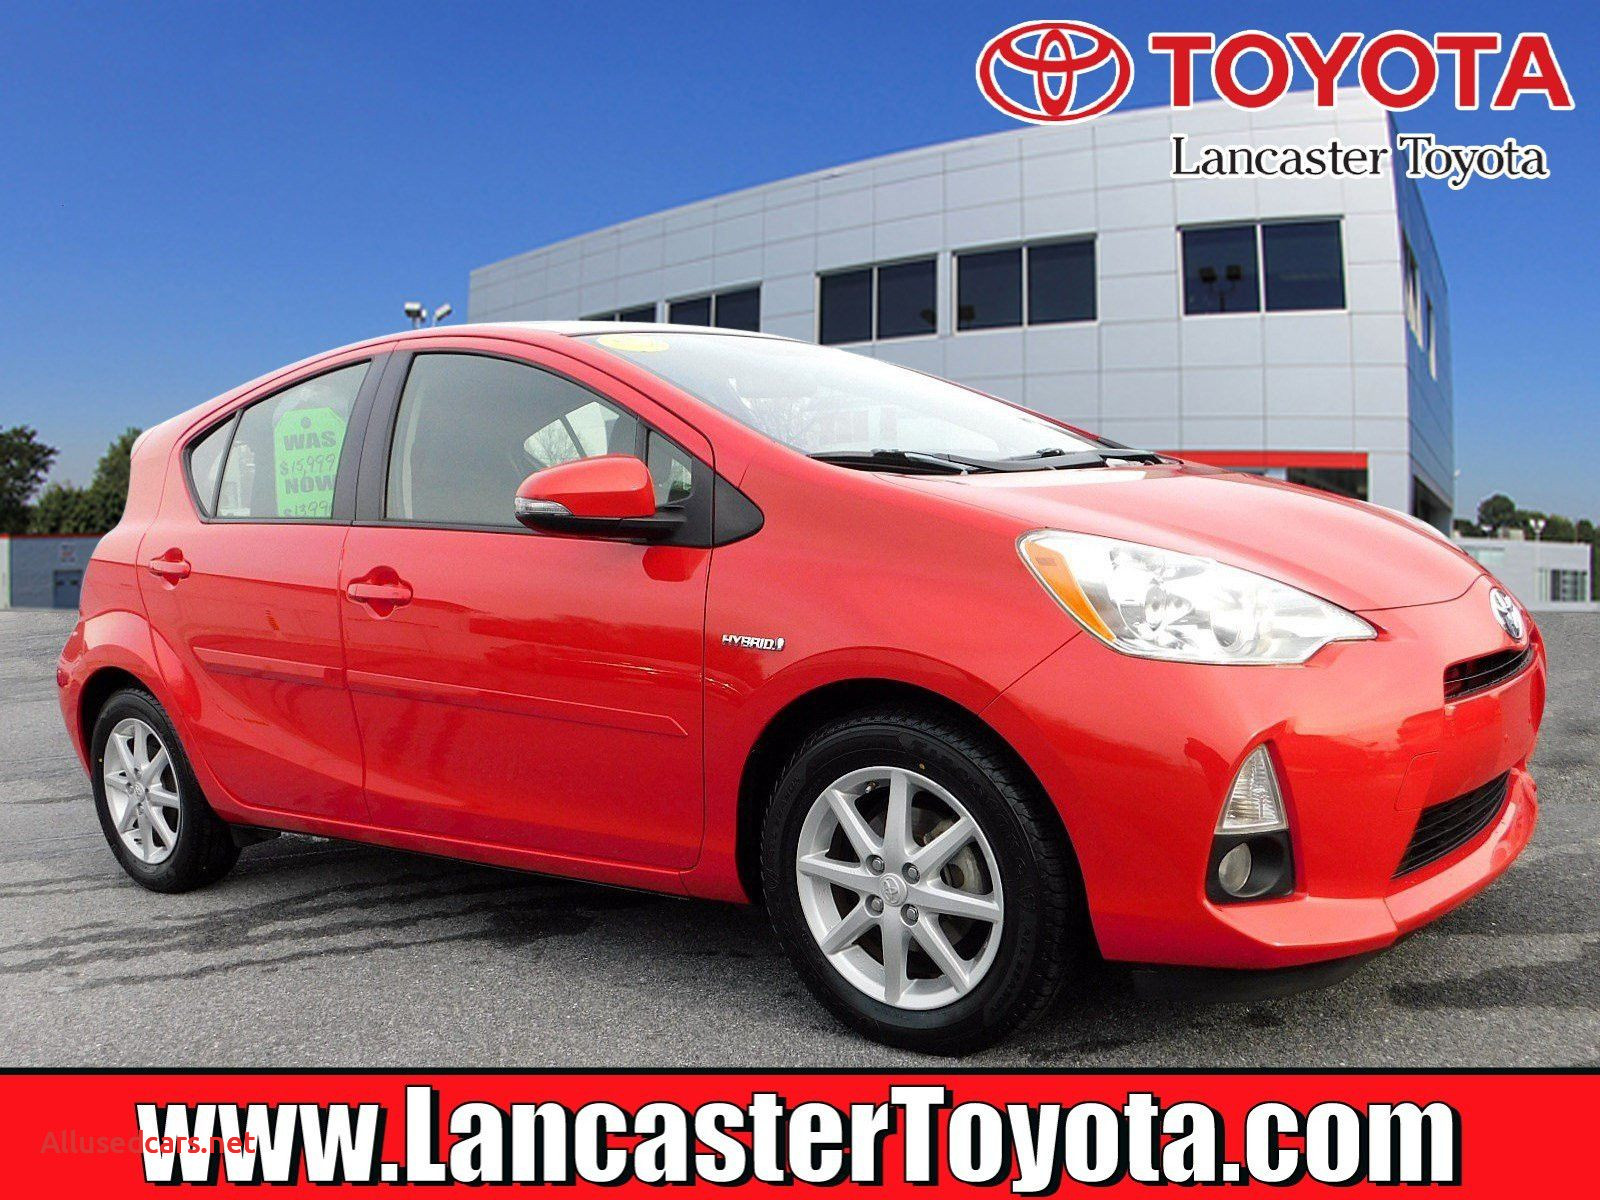 Used Cars for Sale 5000 Beautiful Pin On All Used Cars